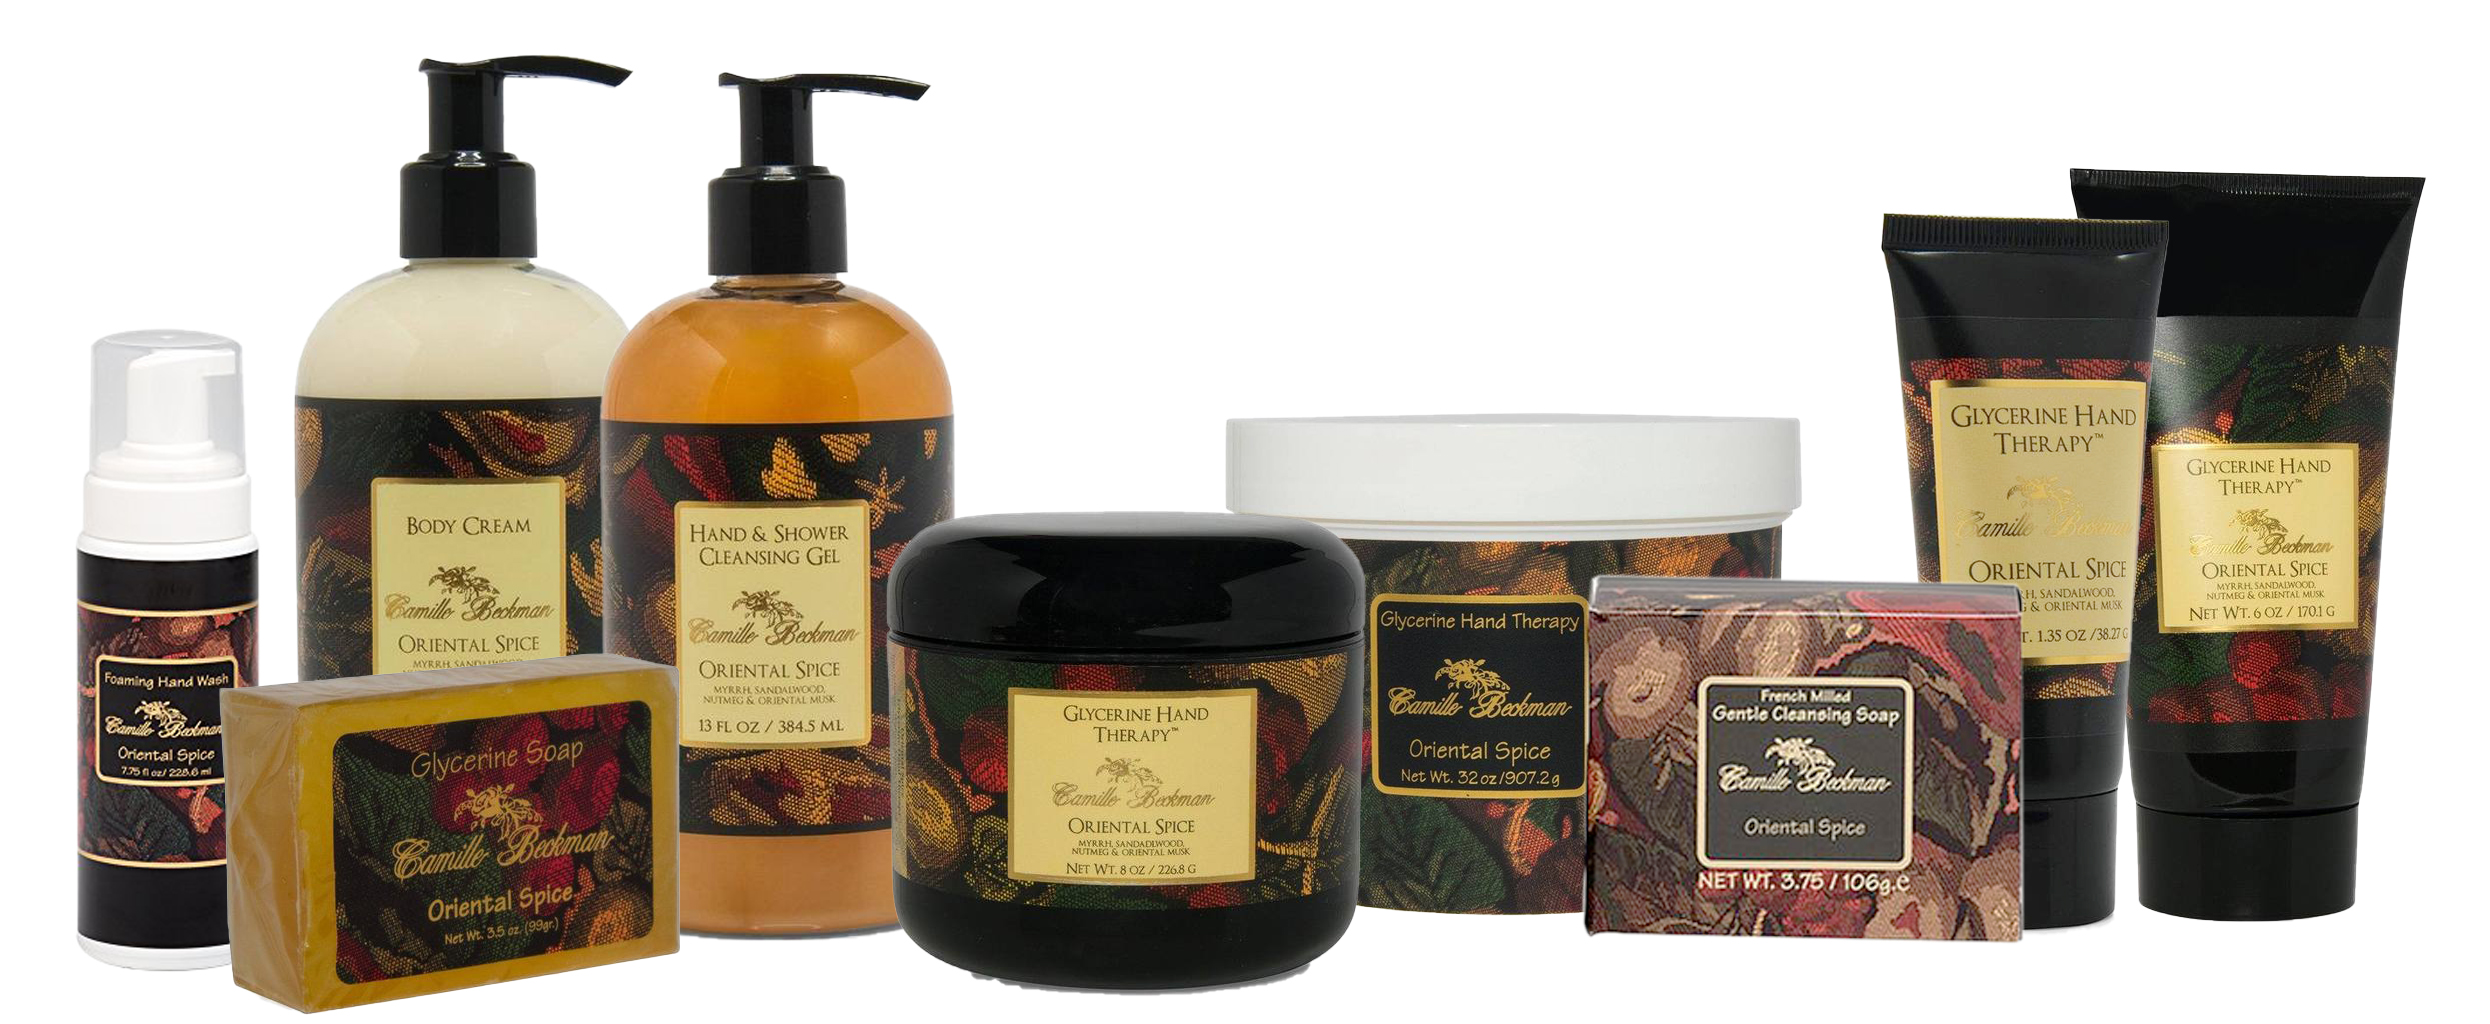 Oriental Spice Product Lines